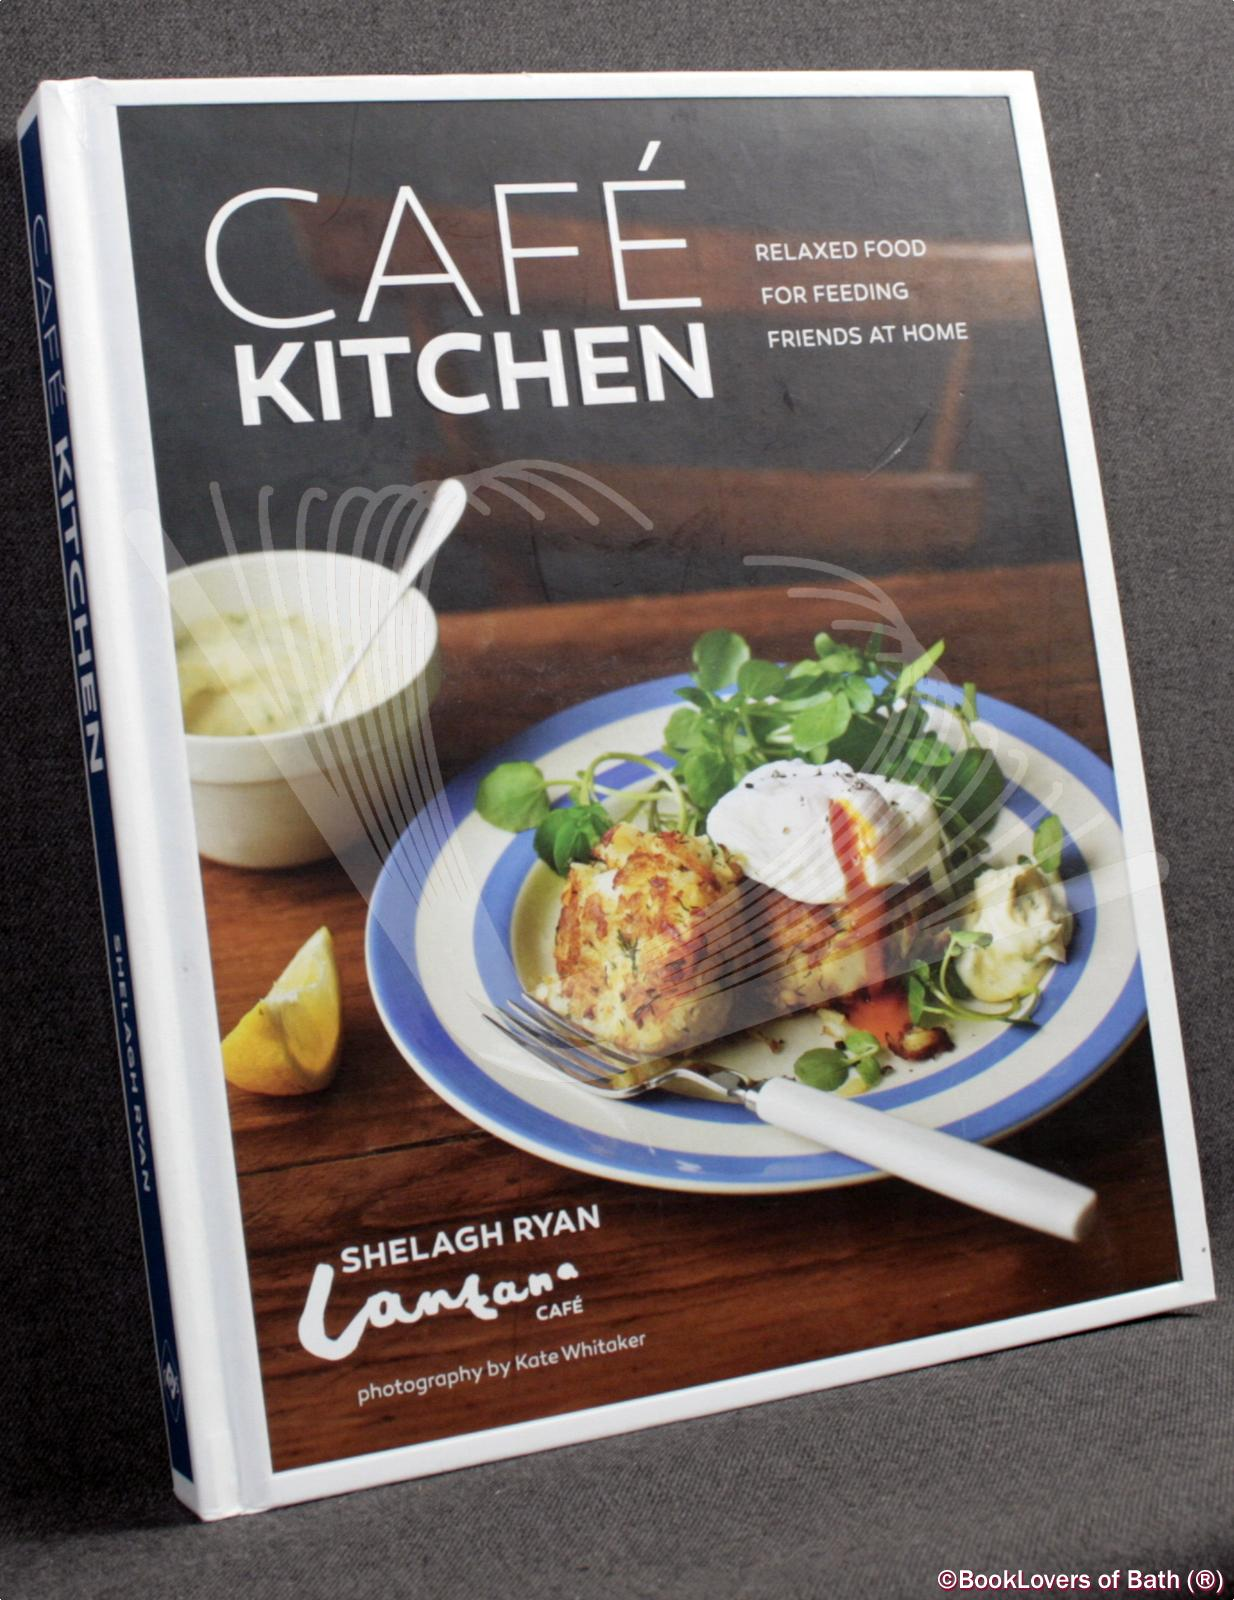 Cafe Kitchen: Relaxed Food for Feeding Friends At Home - Shelagh Ryan